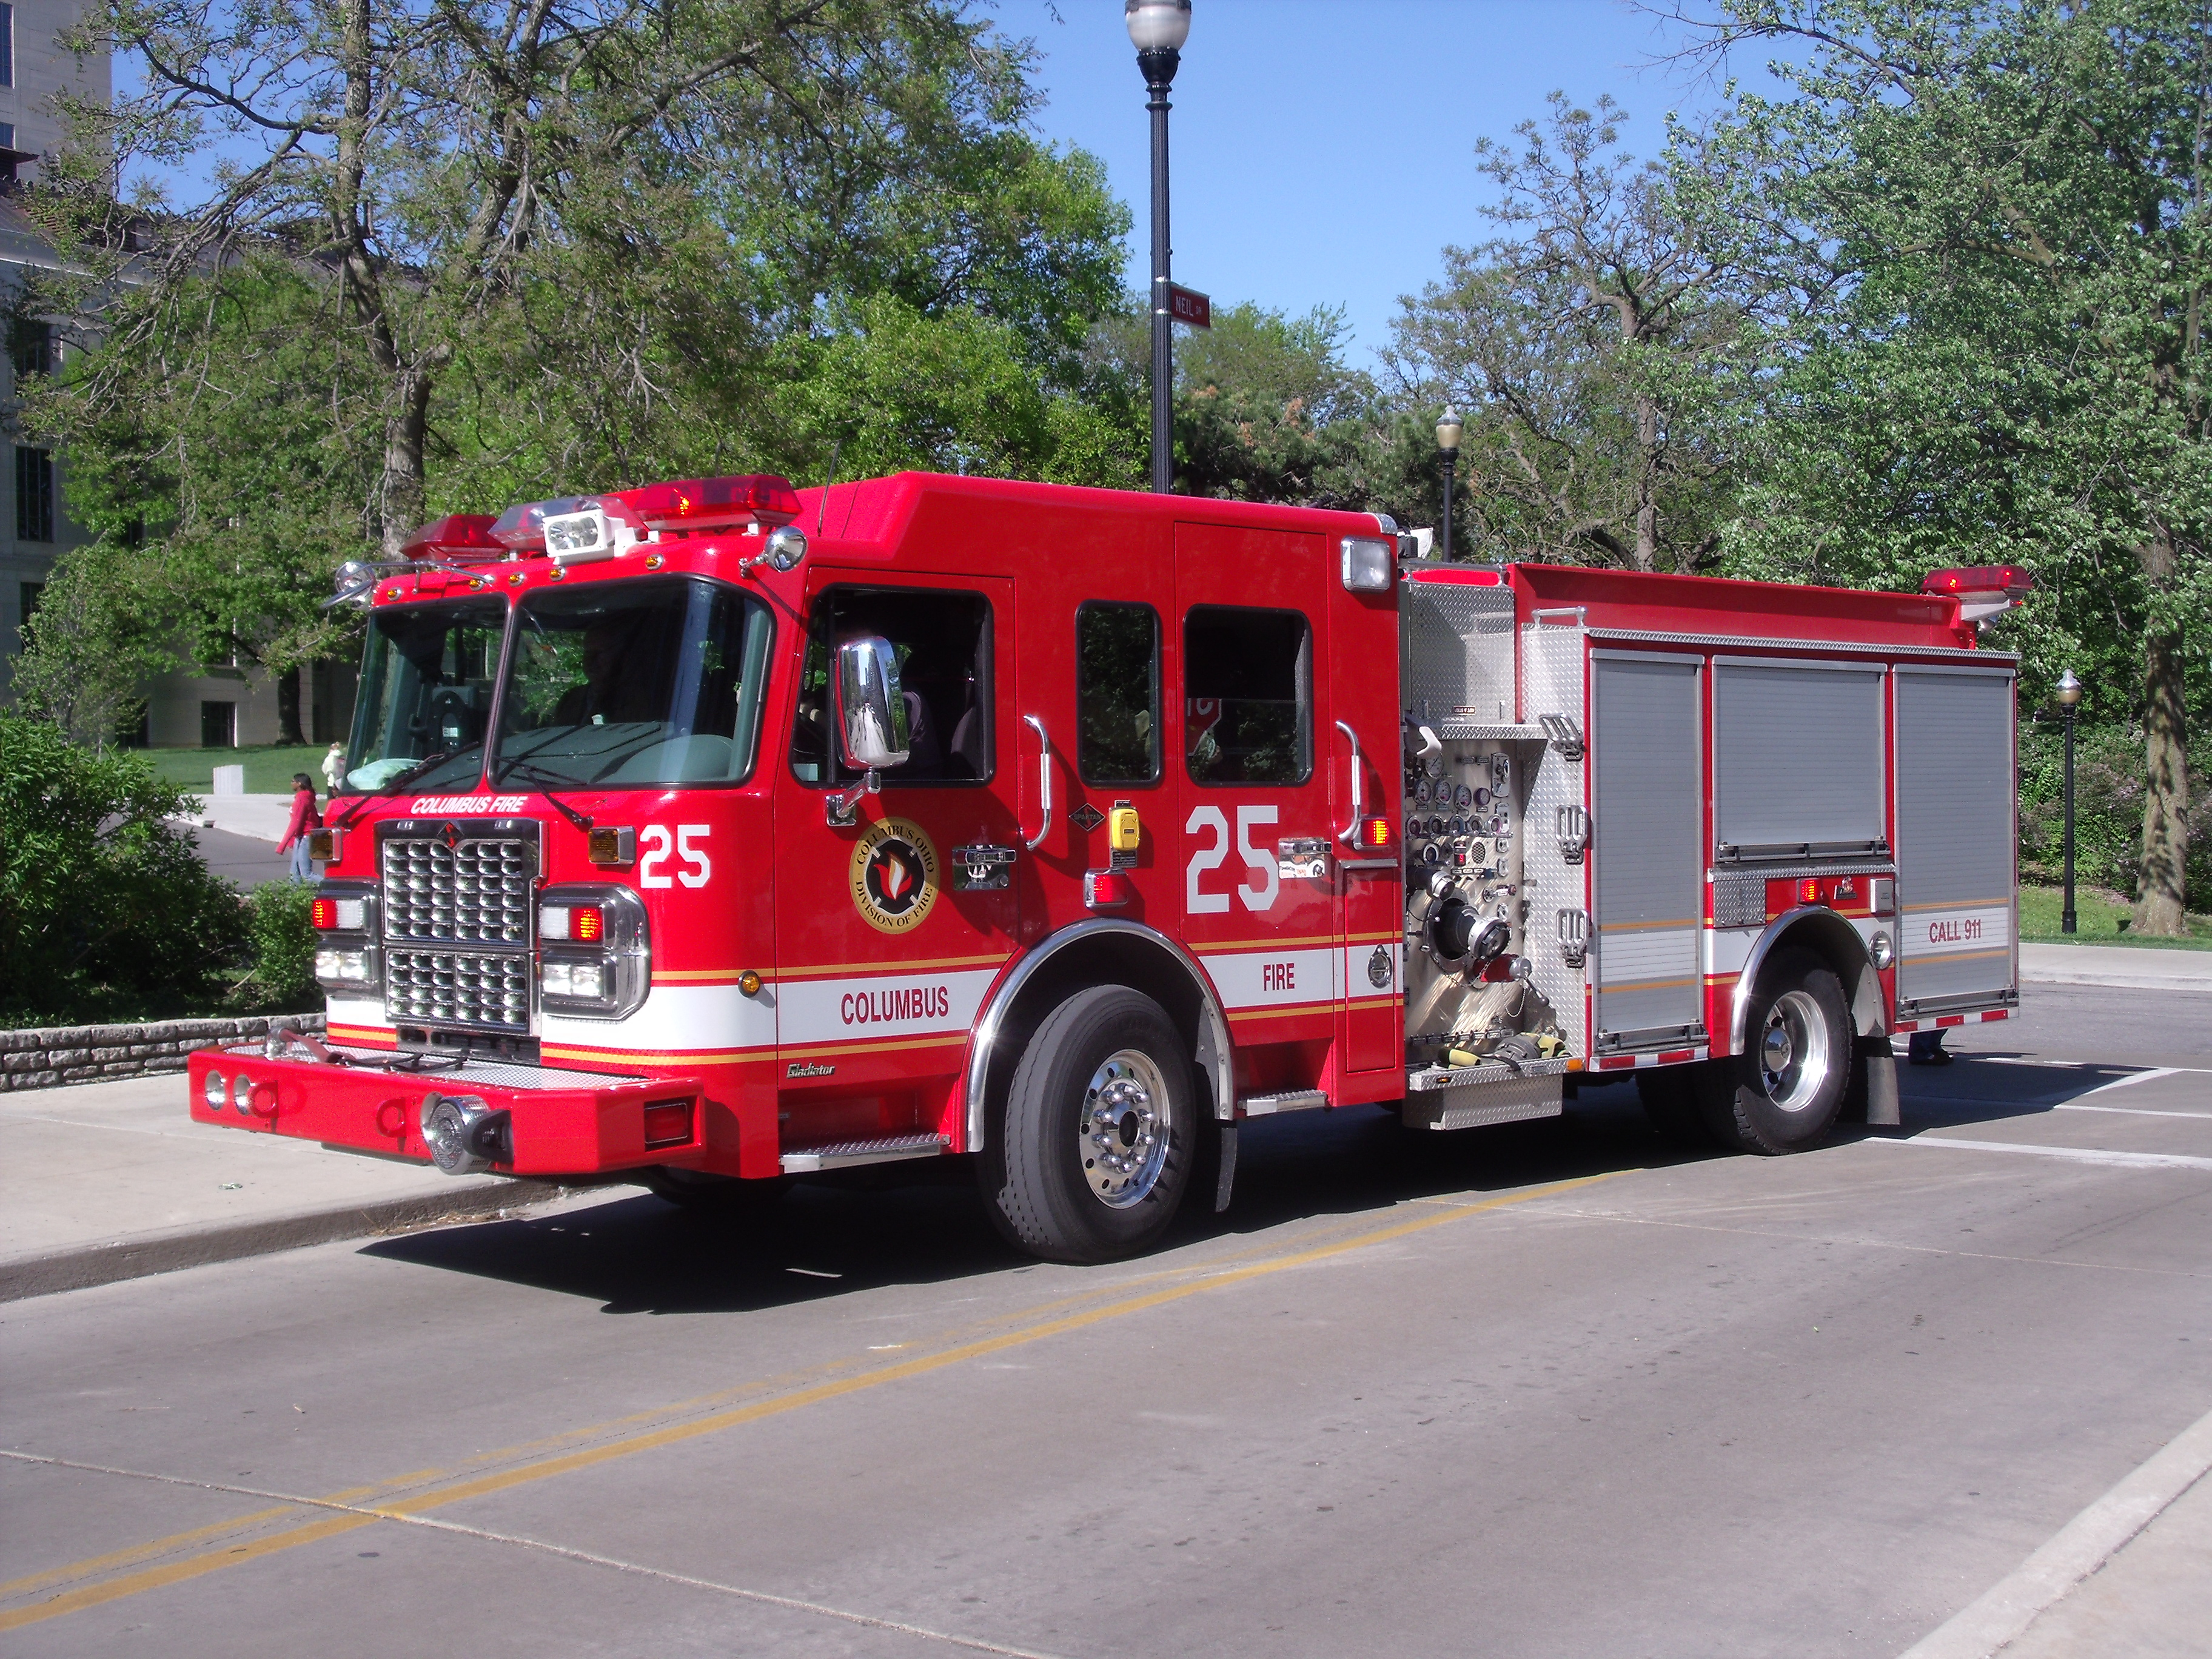 the fire engine - photo #48